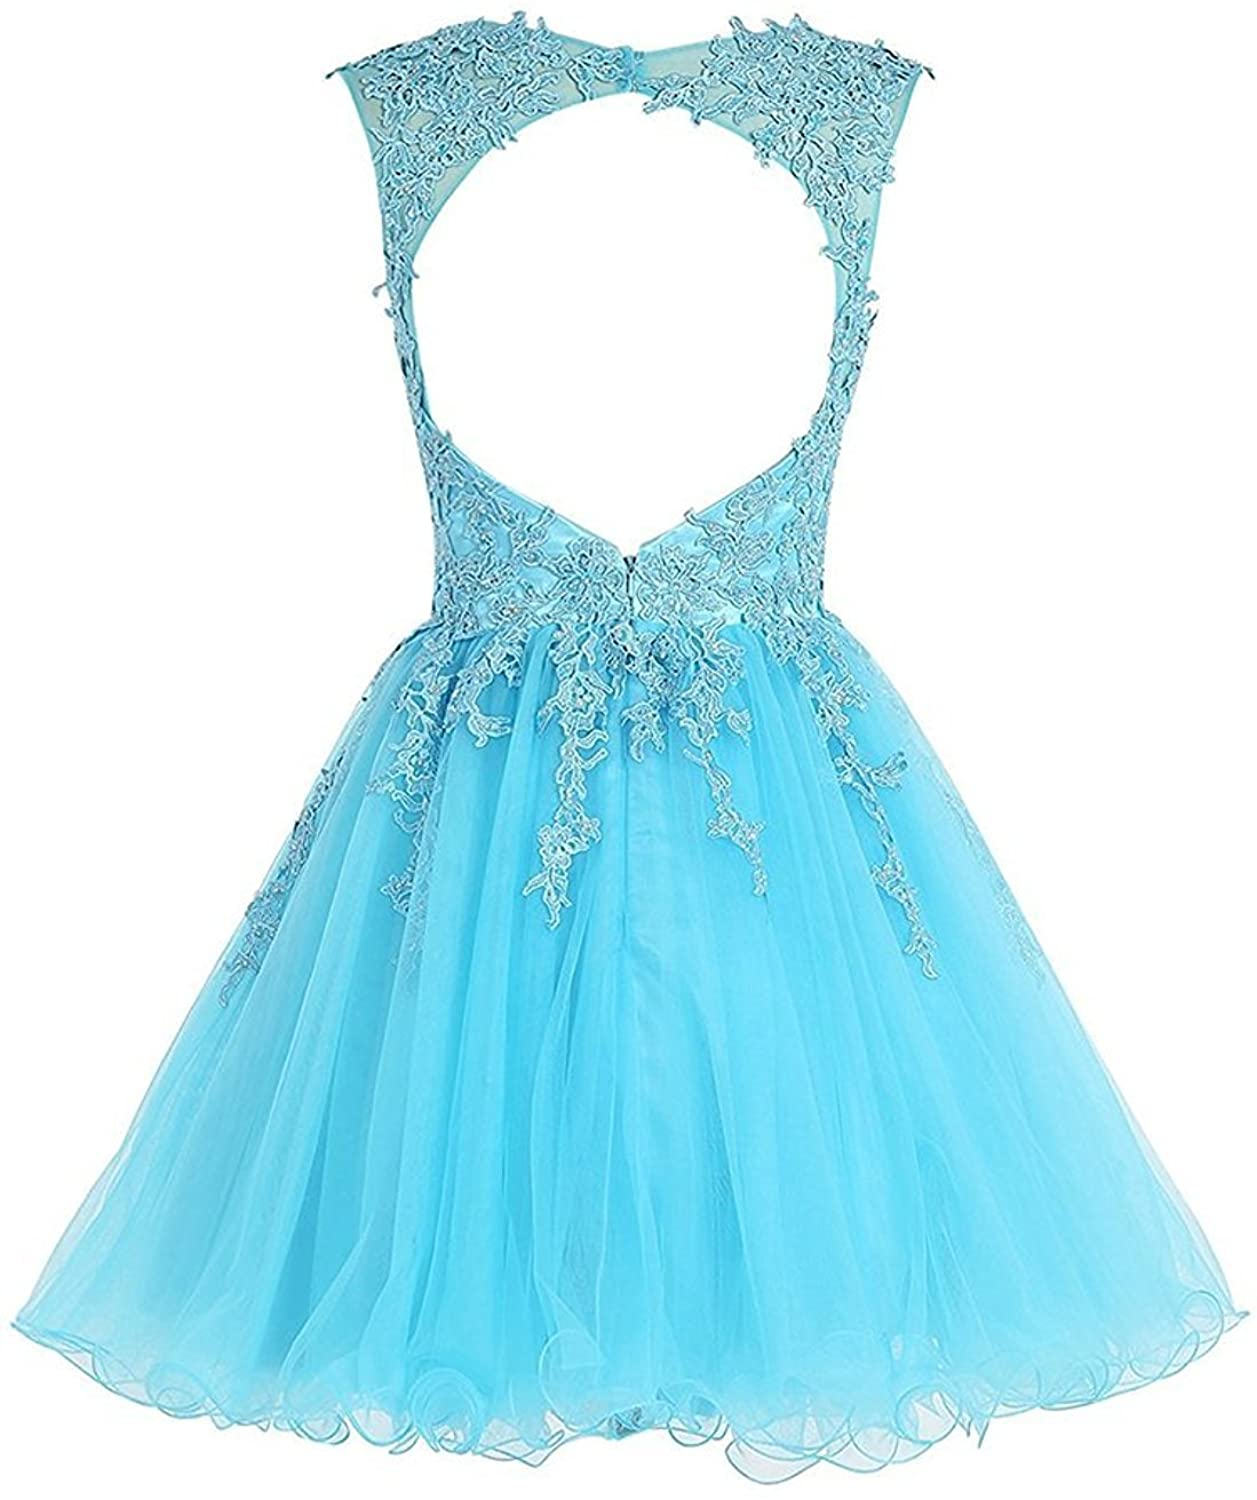 Homecoming Dress Short Cocktail Dress Lace Homecoming Dress Tulle V Neck Prom Dresses Appliques